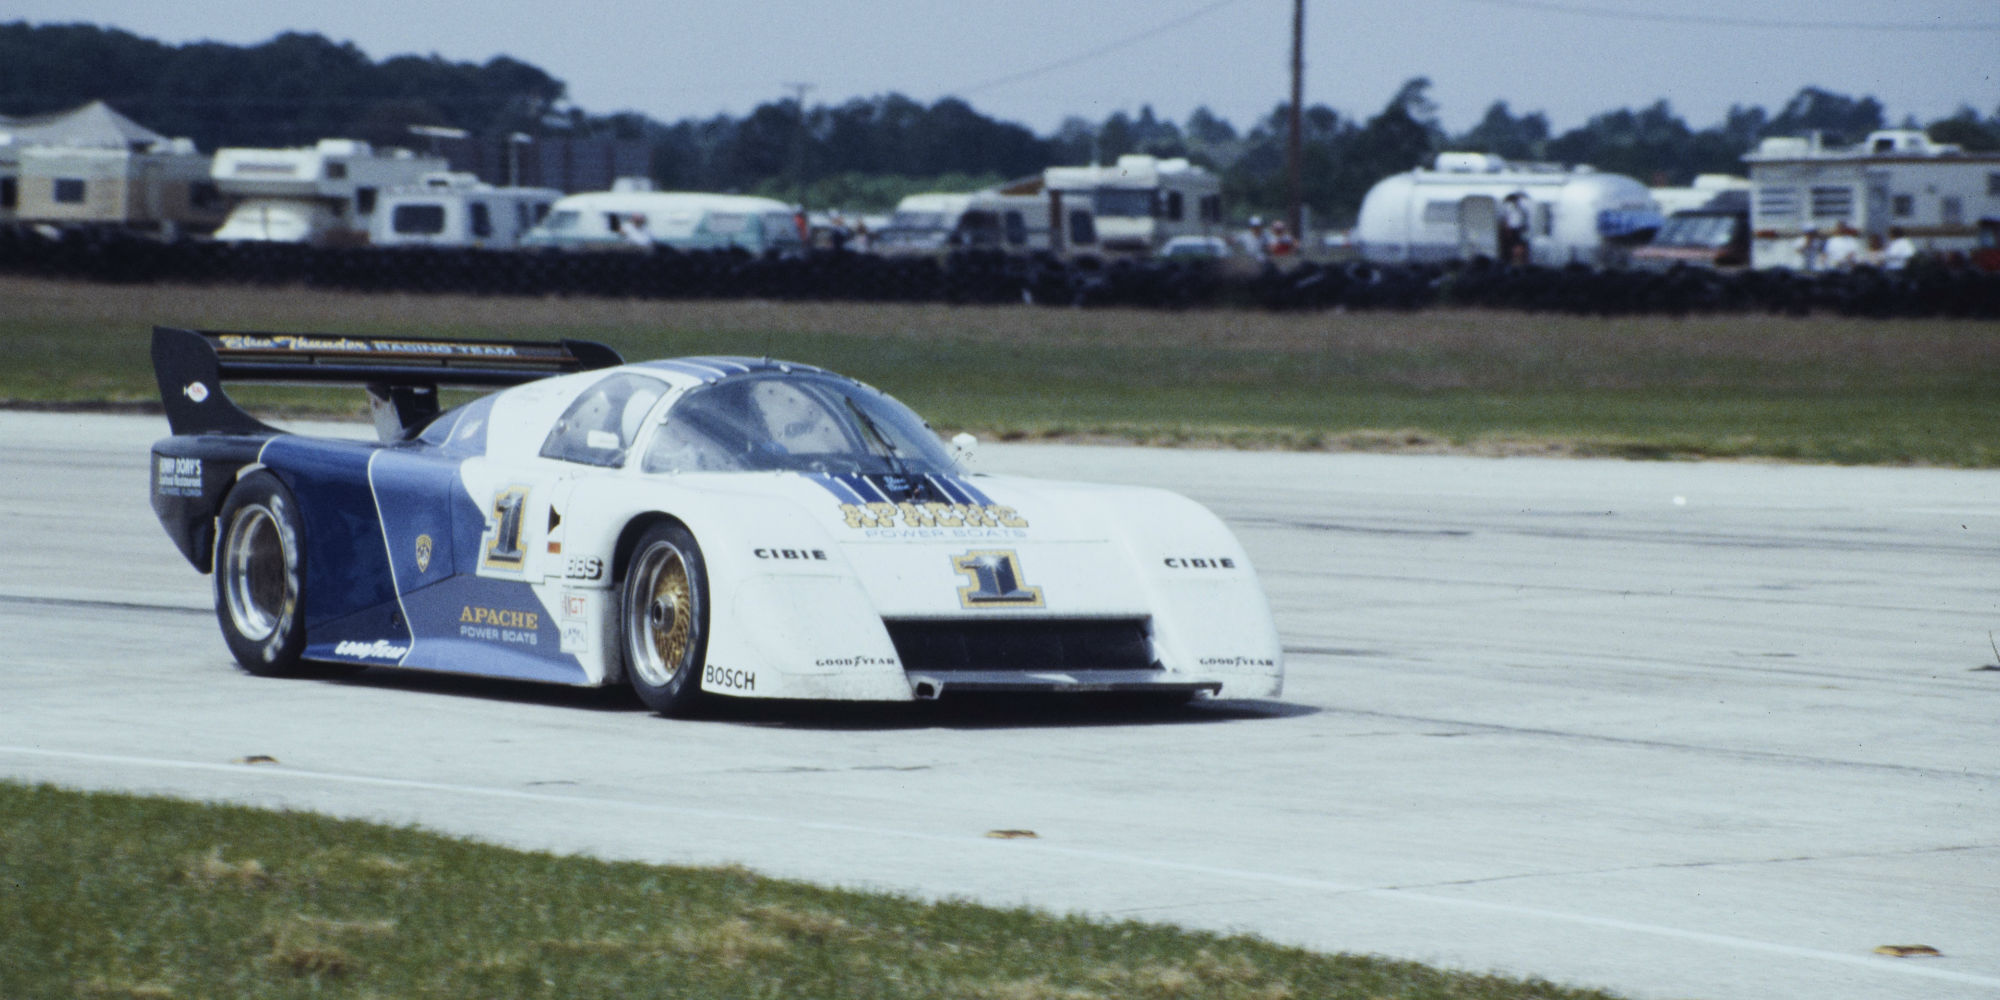 The 1984 IMSA Championship Winning, Blue Thunder, Ex – Randy Lanier, Bill Whittington, Emerson Fittipaldi 1984 March 84G Chevrolet GTP